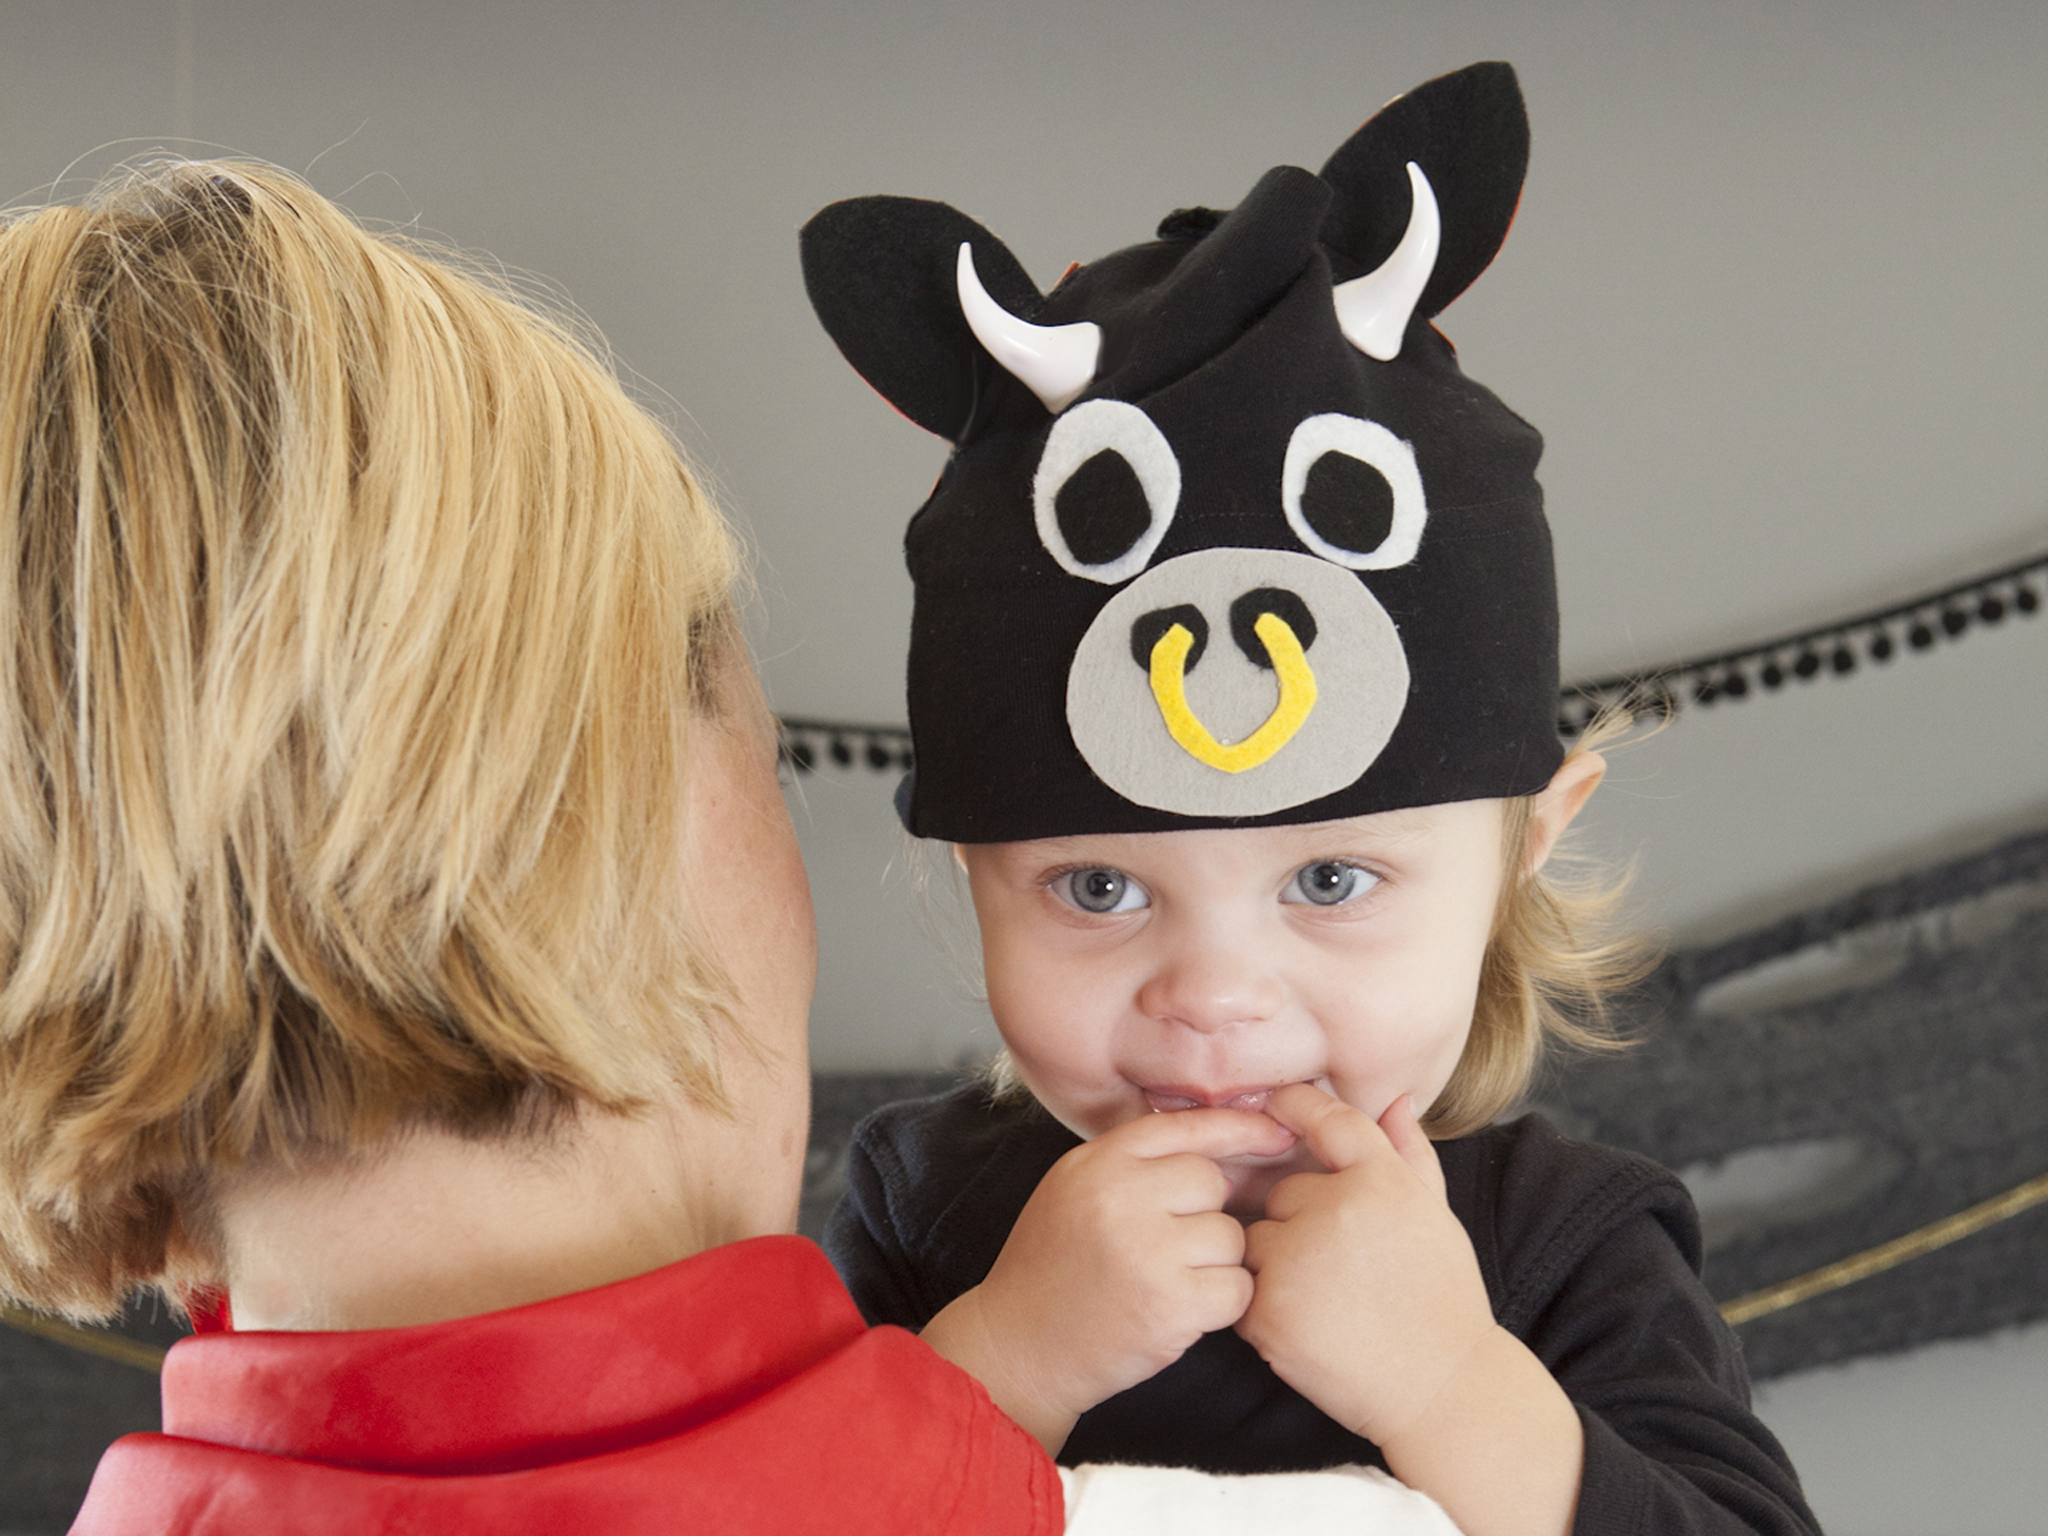 DIY Baby Halloween costume ideas from HGTV